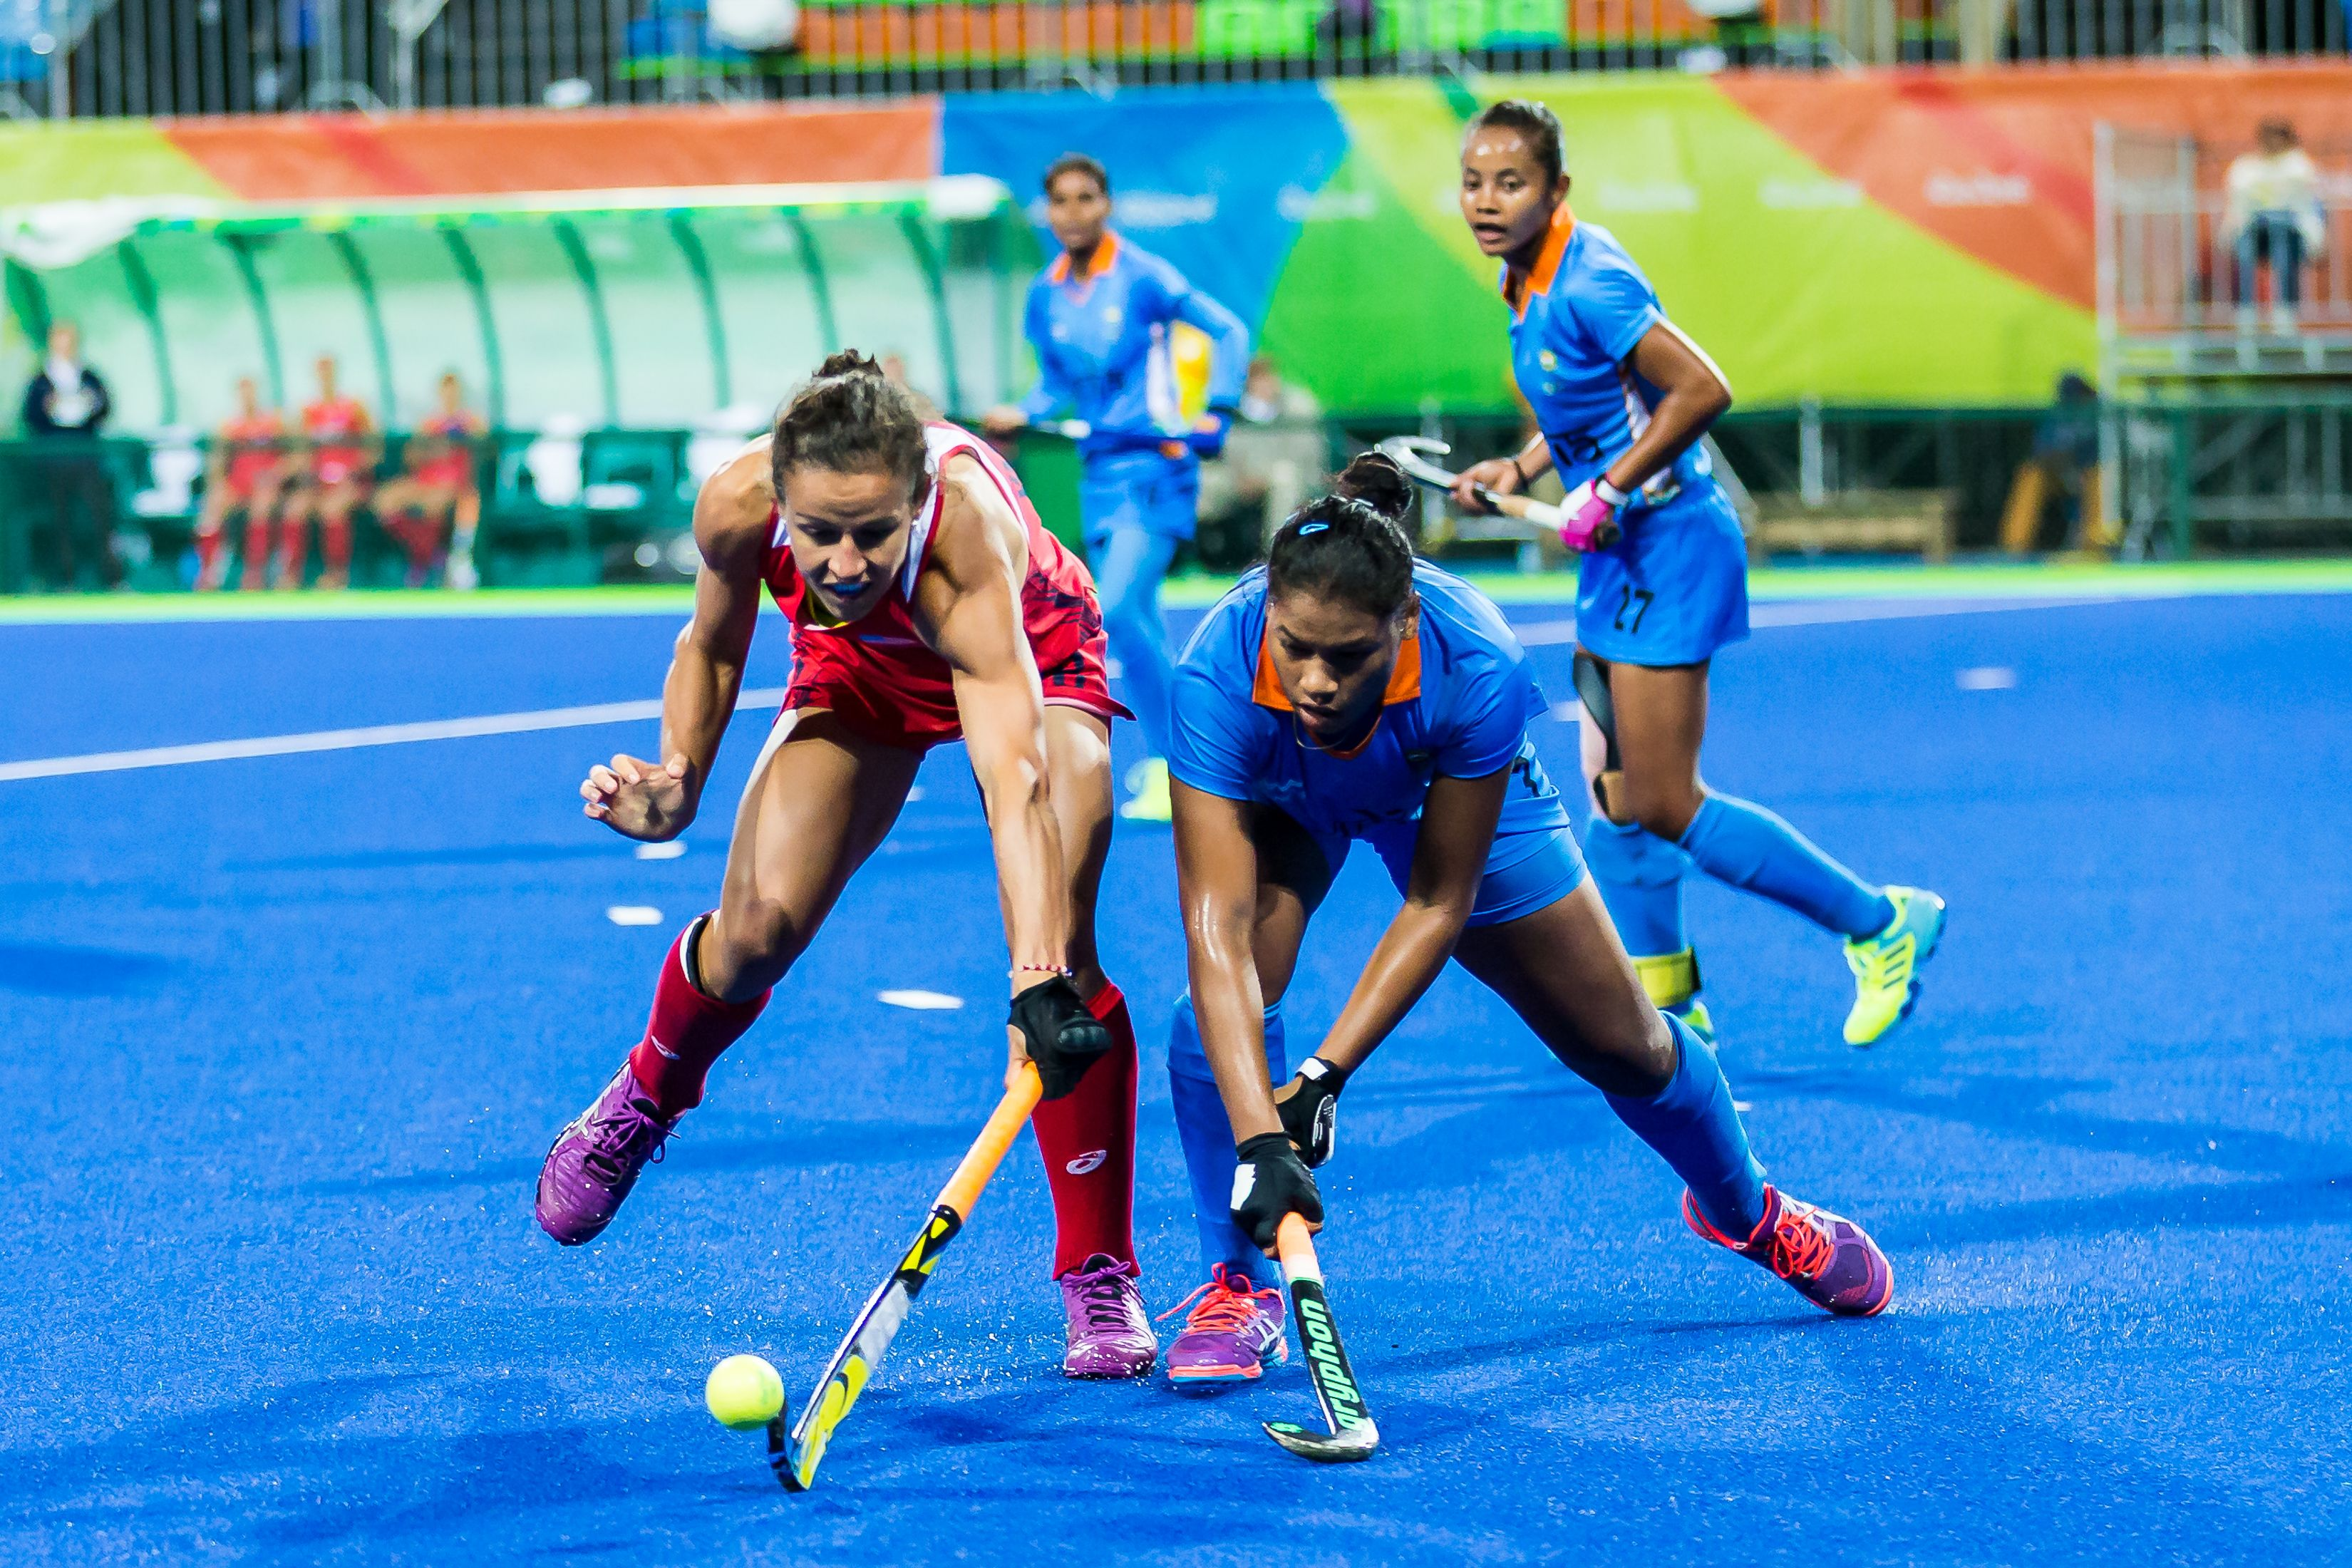 U S Olympic Women S Field Hockey Team Captures Fourth Straight Victory Earning A Total Of 12 Event Points Un1te Field Hockey Womens Field Hockey Hockey Teams